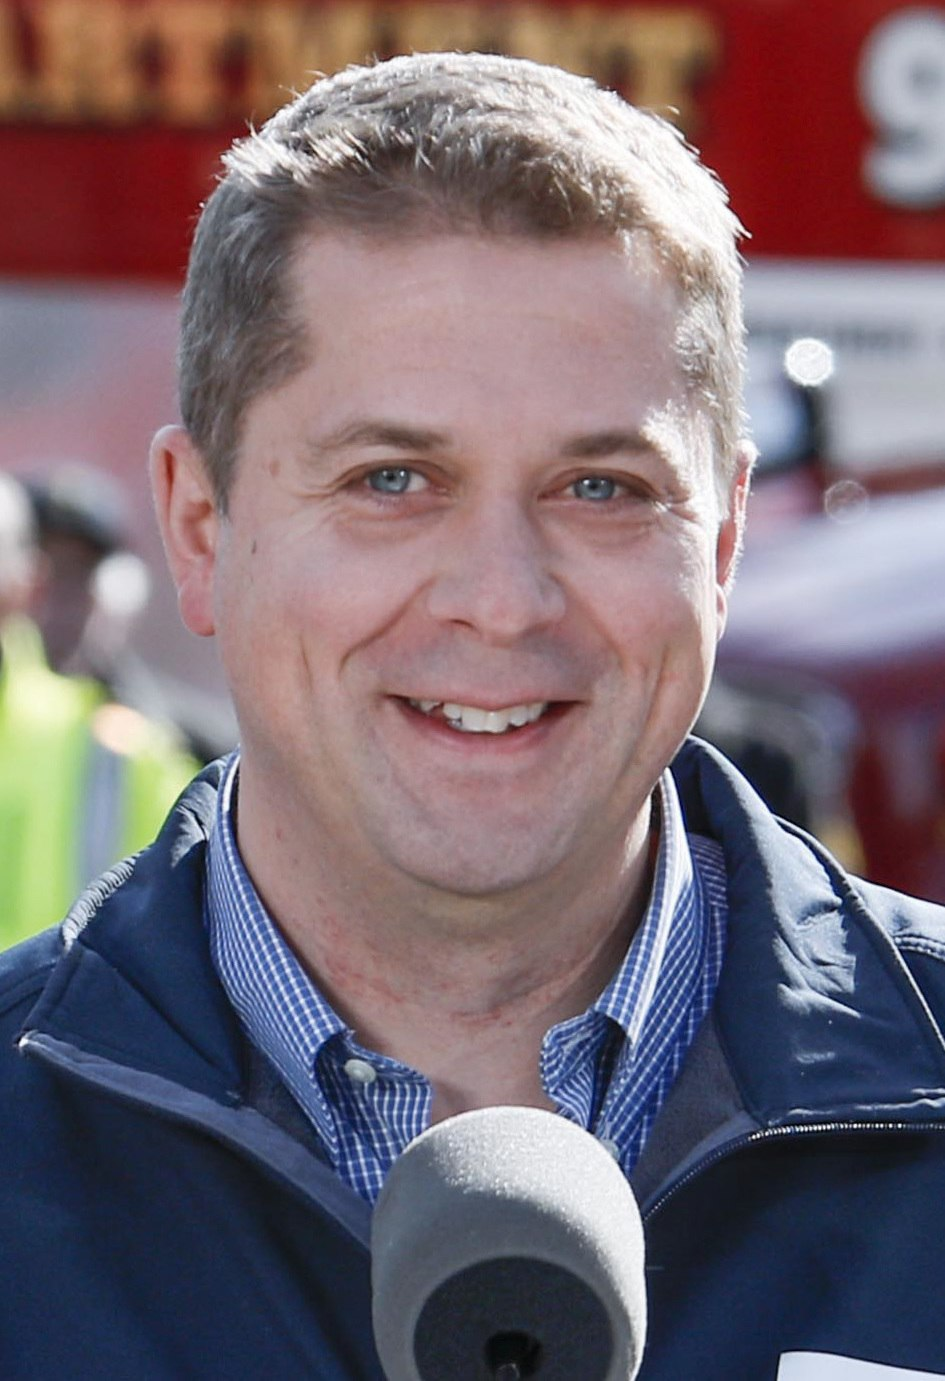 Andrew Scheer in Kingsclear (48859362463) (cropped) (cropped)